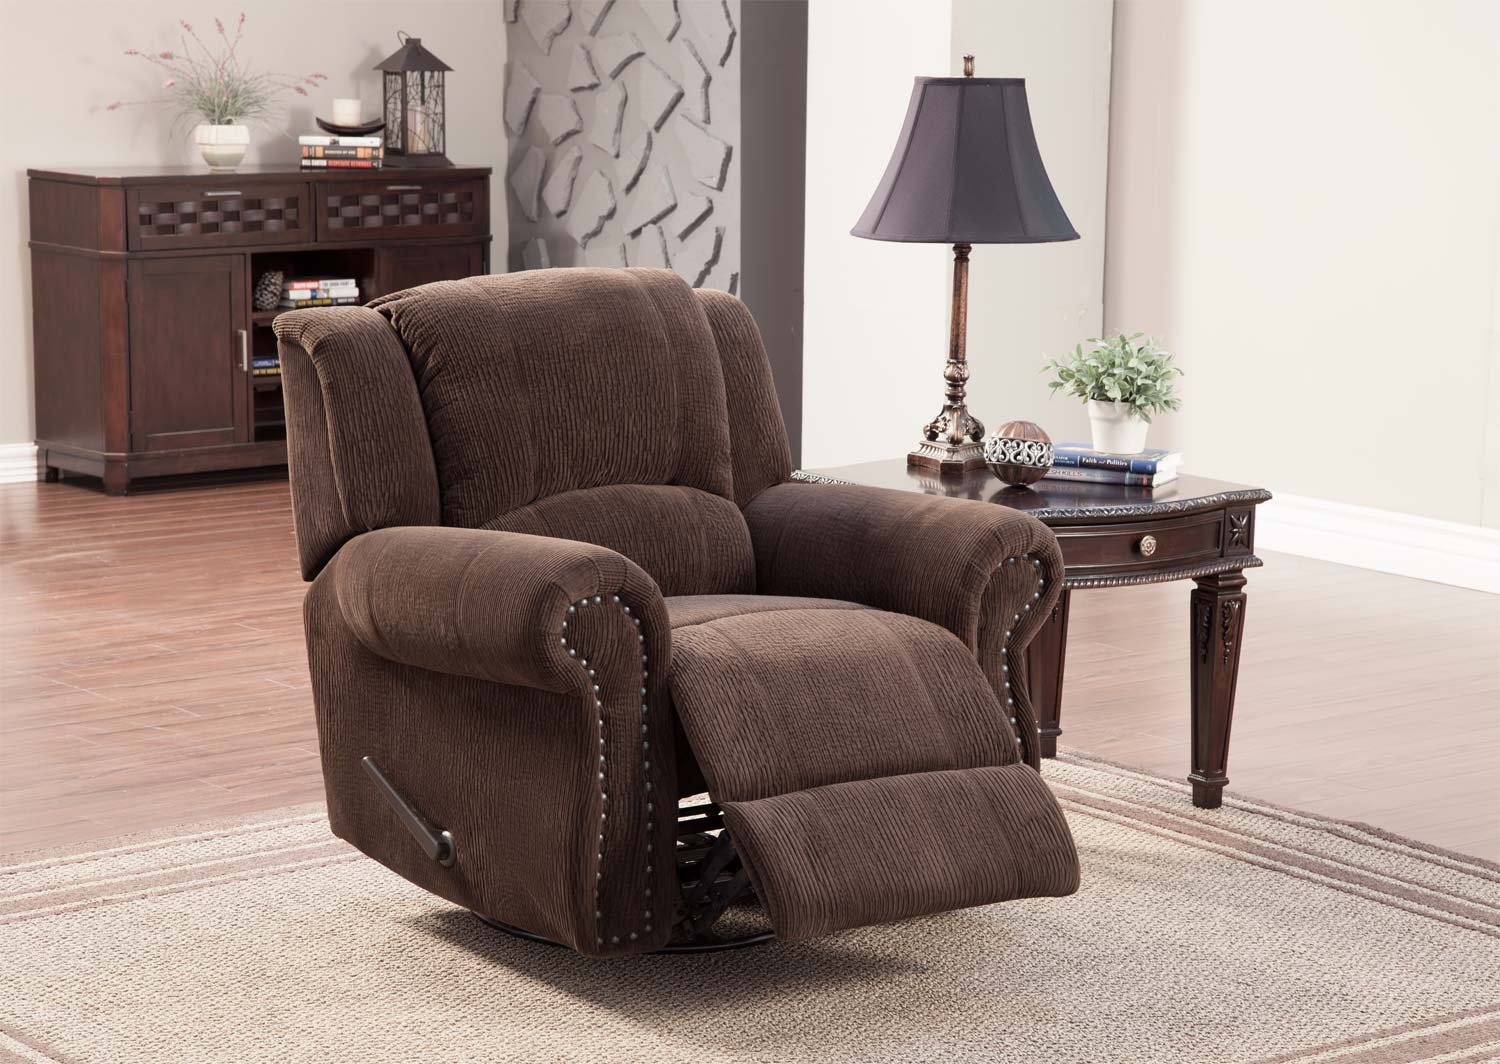 homelegance quinn swivel rocker recliner chair chocolate - Swivel Rocker Chair